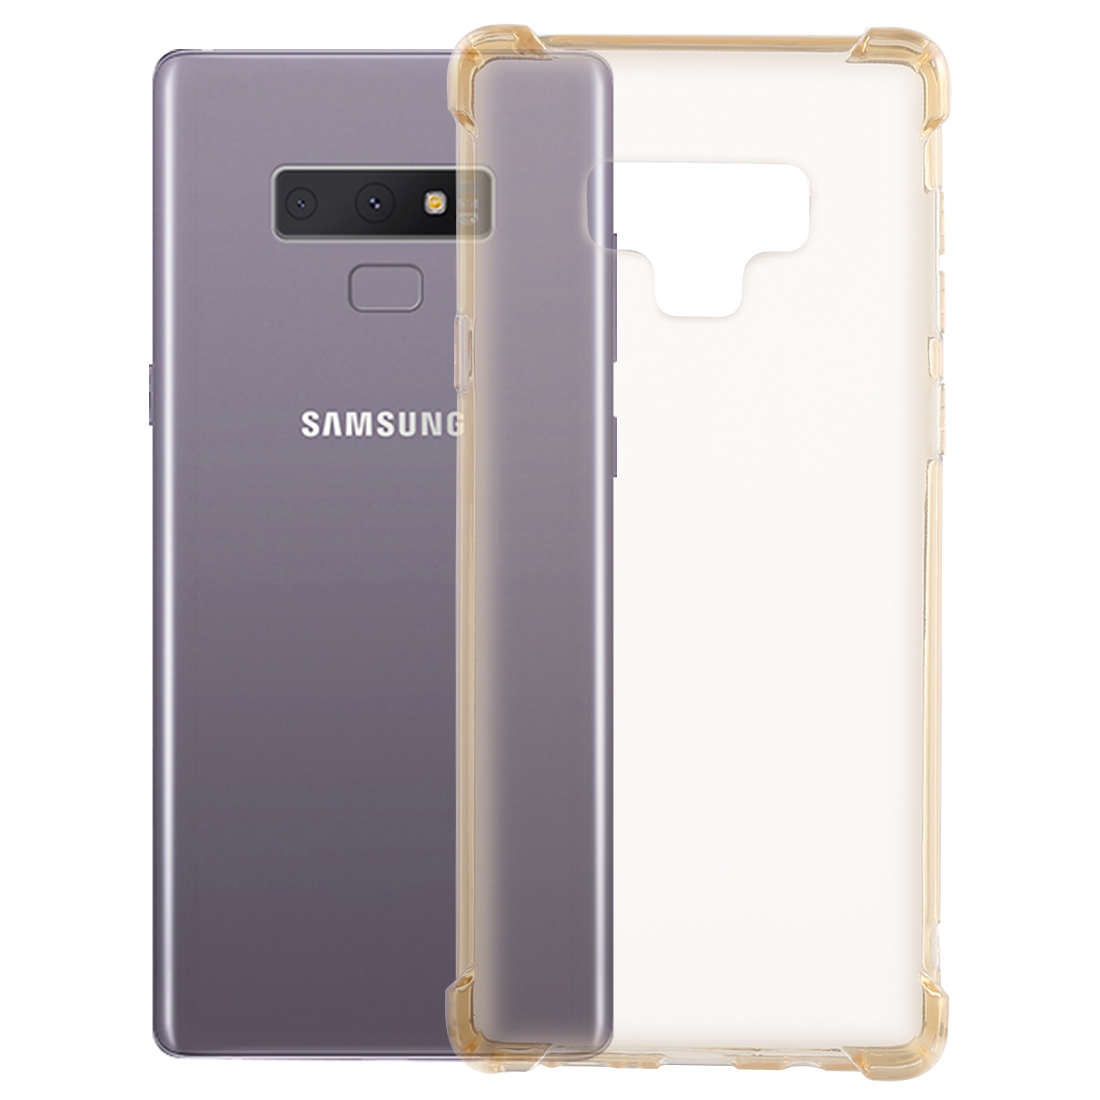 0.75mm Dropproof Transparent TPU Case for Galaxy Note9 (Yellow)